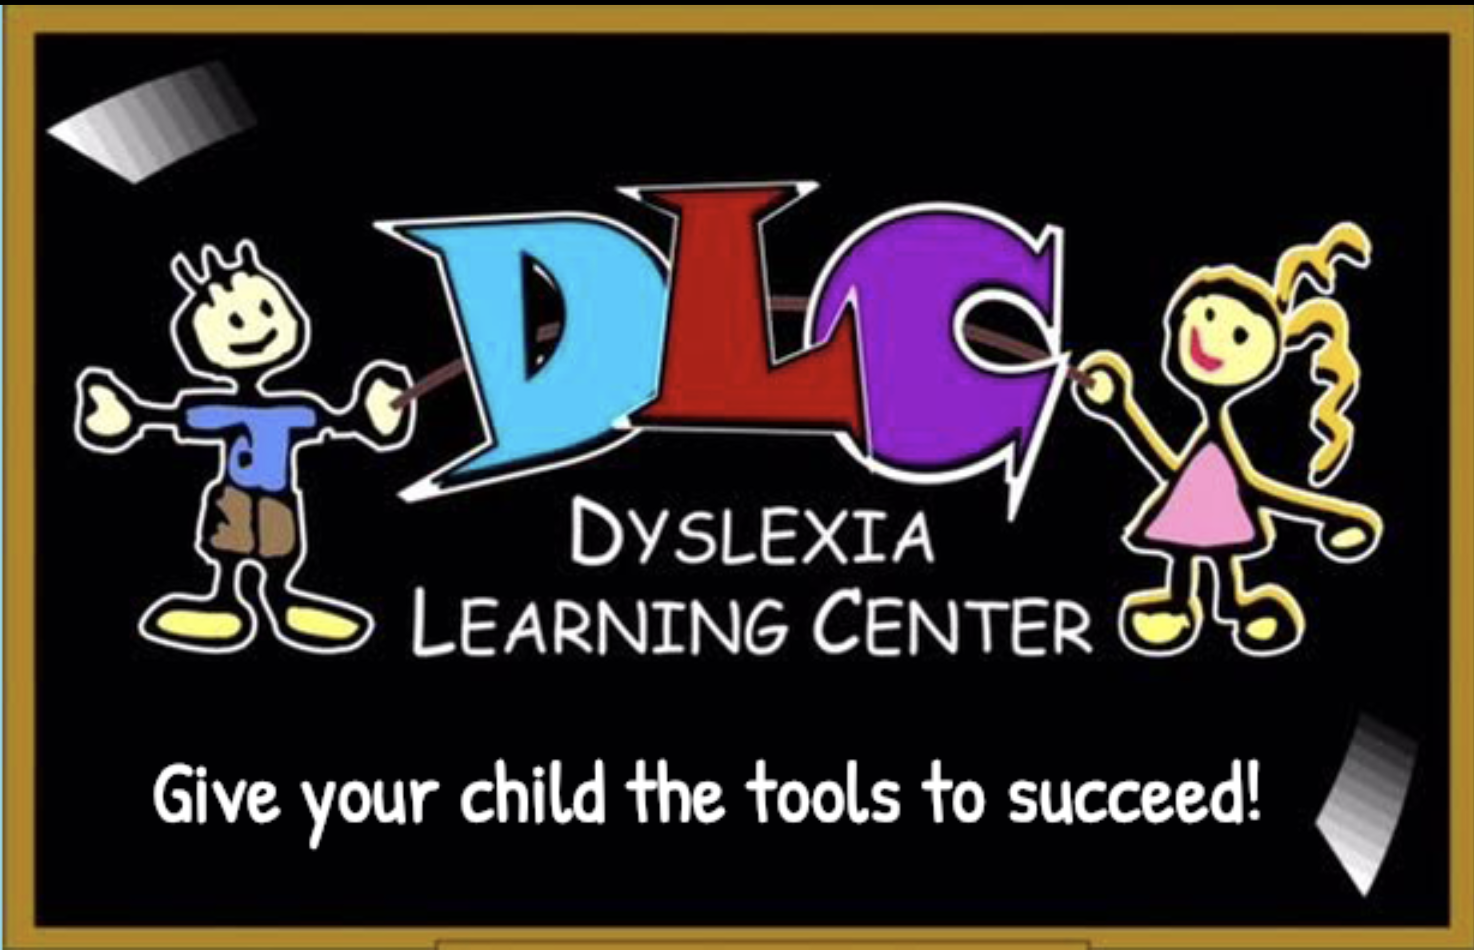 Dyslexia Learning Center image 1